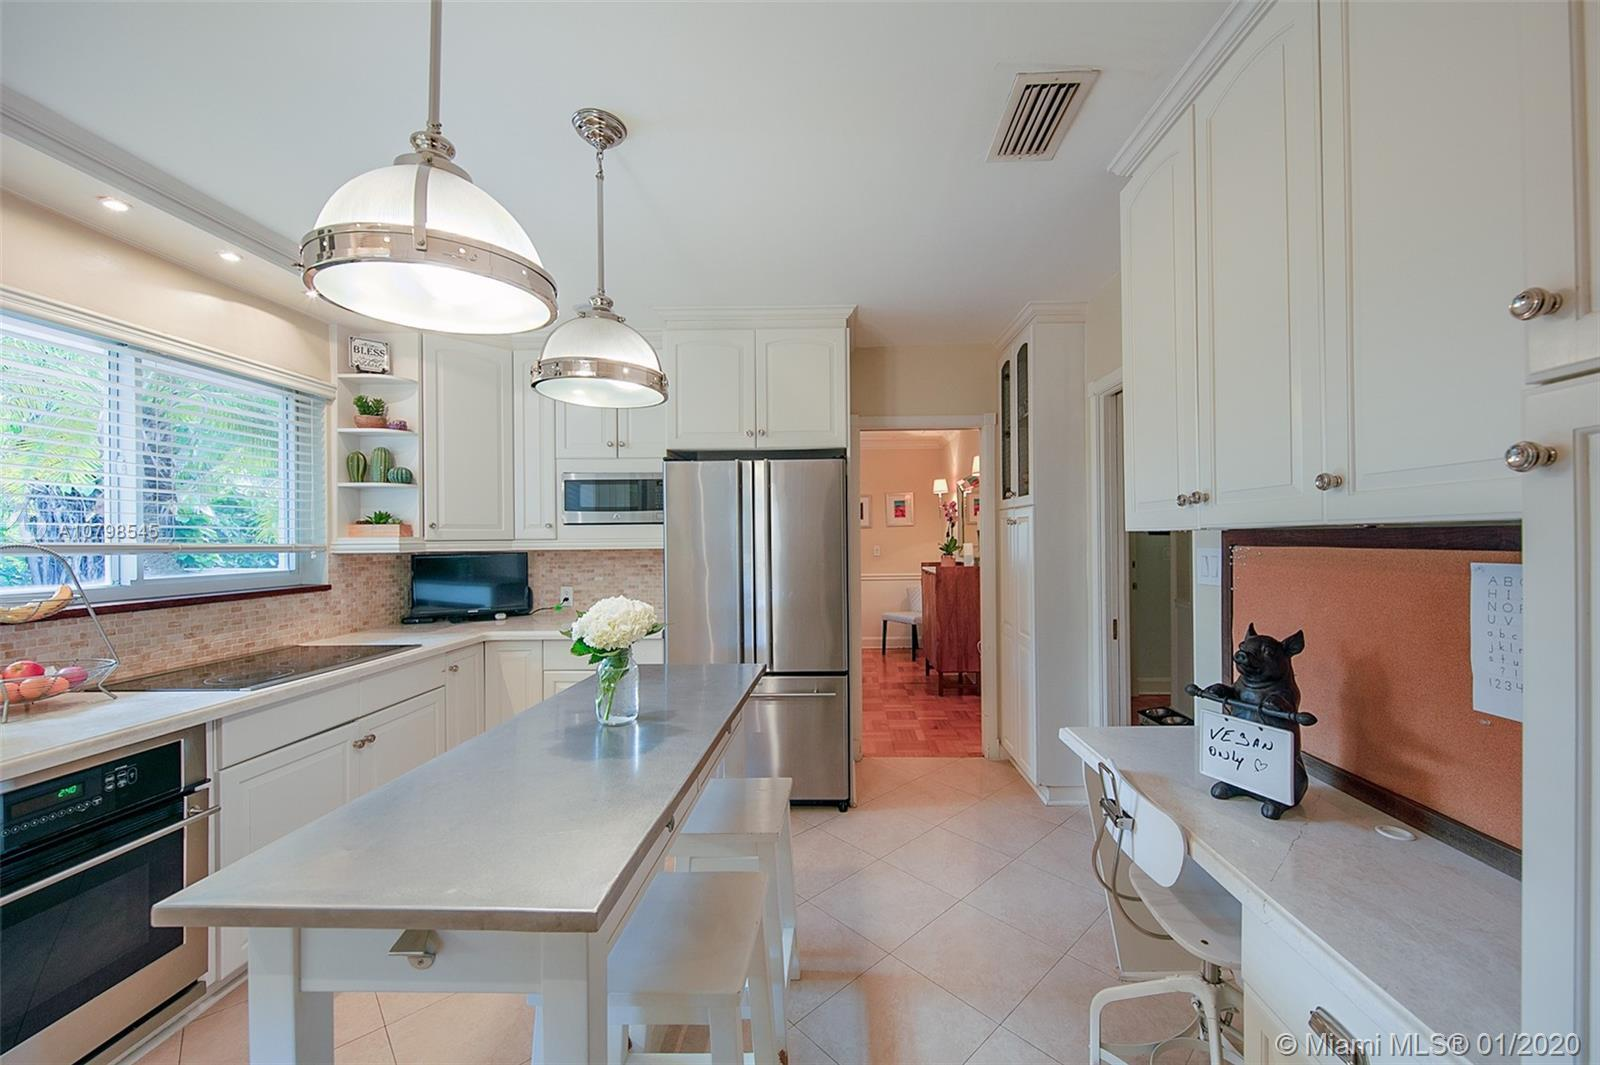 Nestled in the lush street of Maggiore, this enchanted 3 bedroom, 2 bath home represents the best of